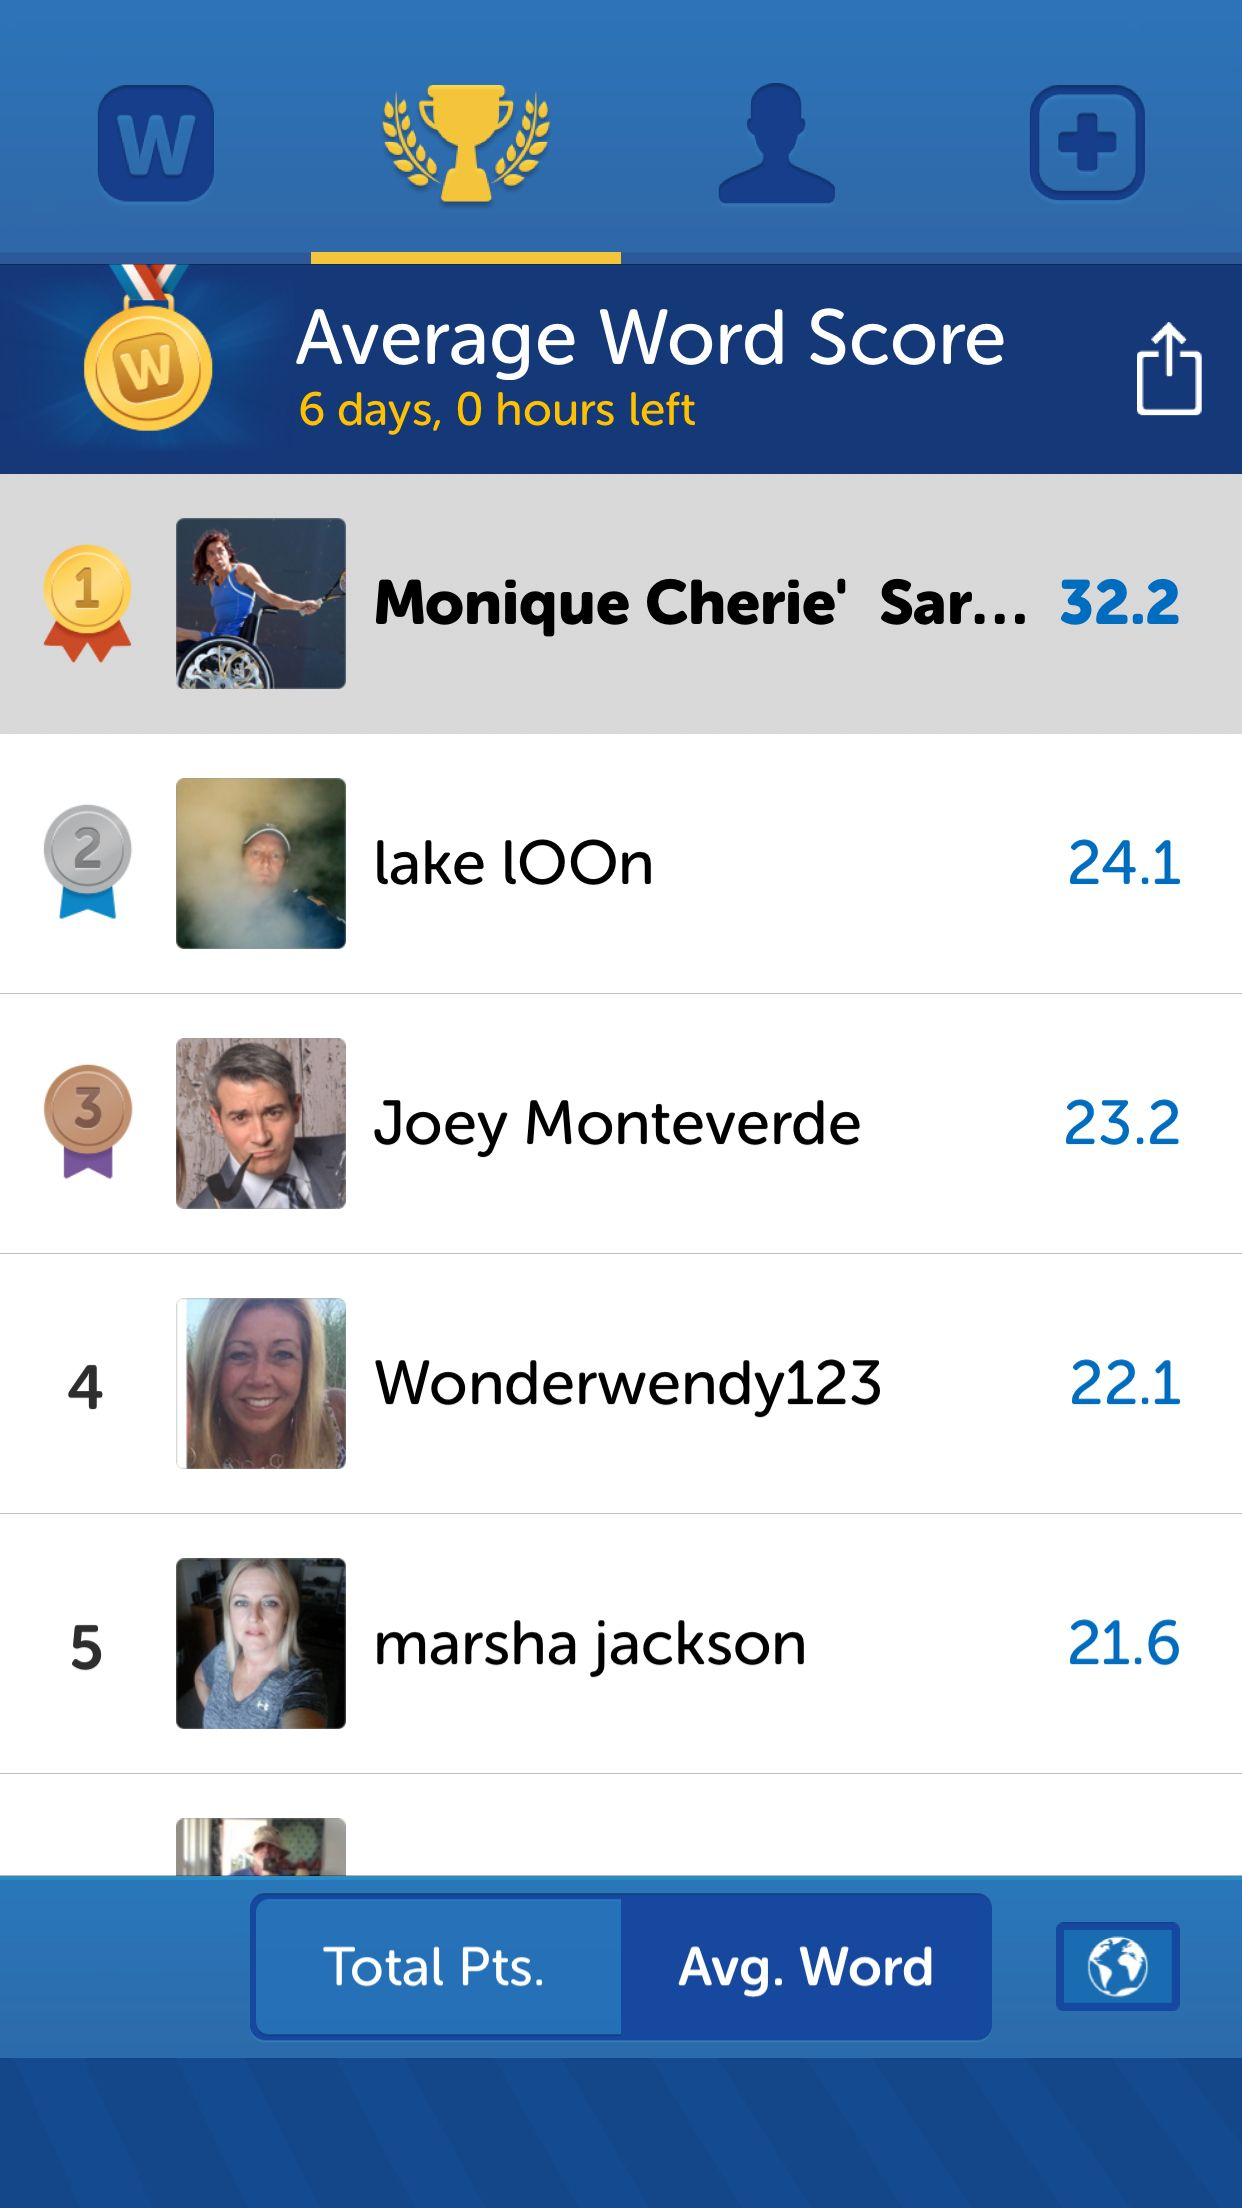 Check out my position on the Words with Friends leaderboard  I'm #1